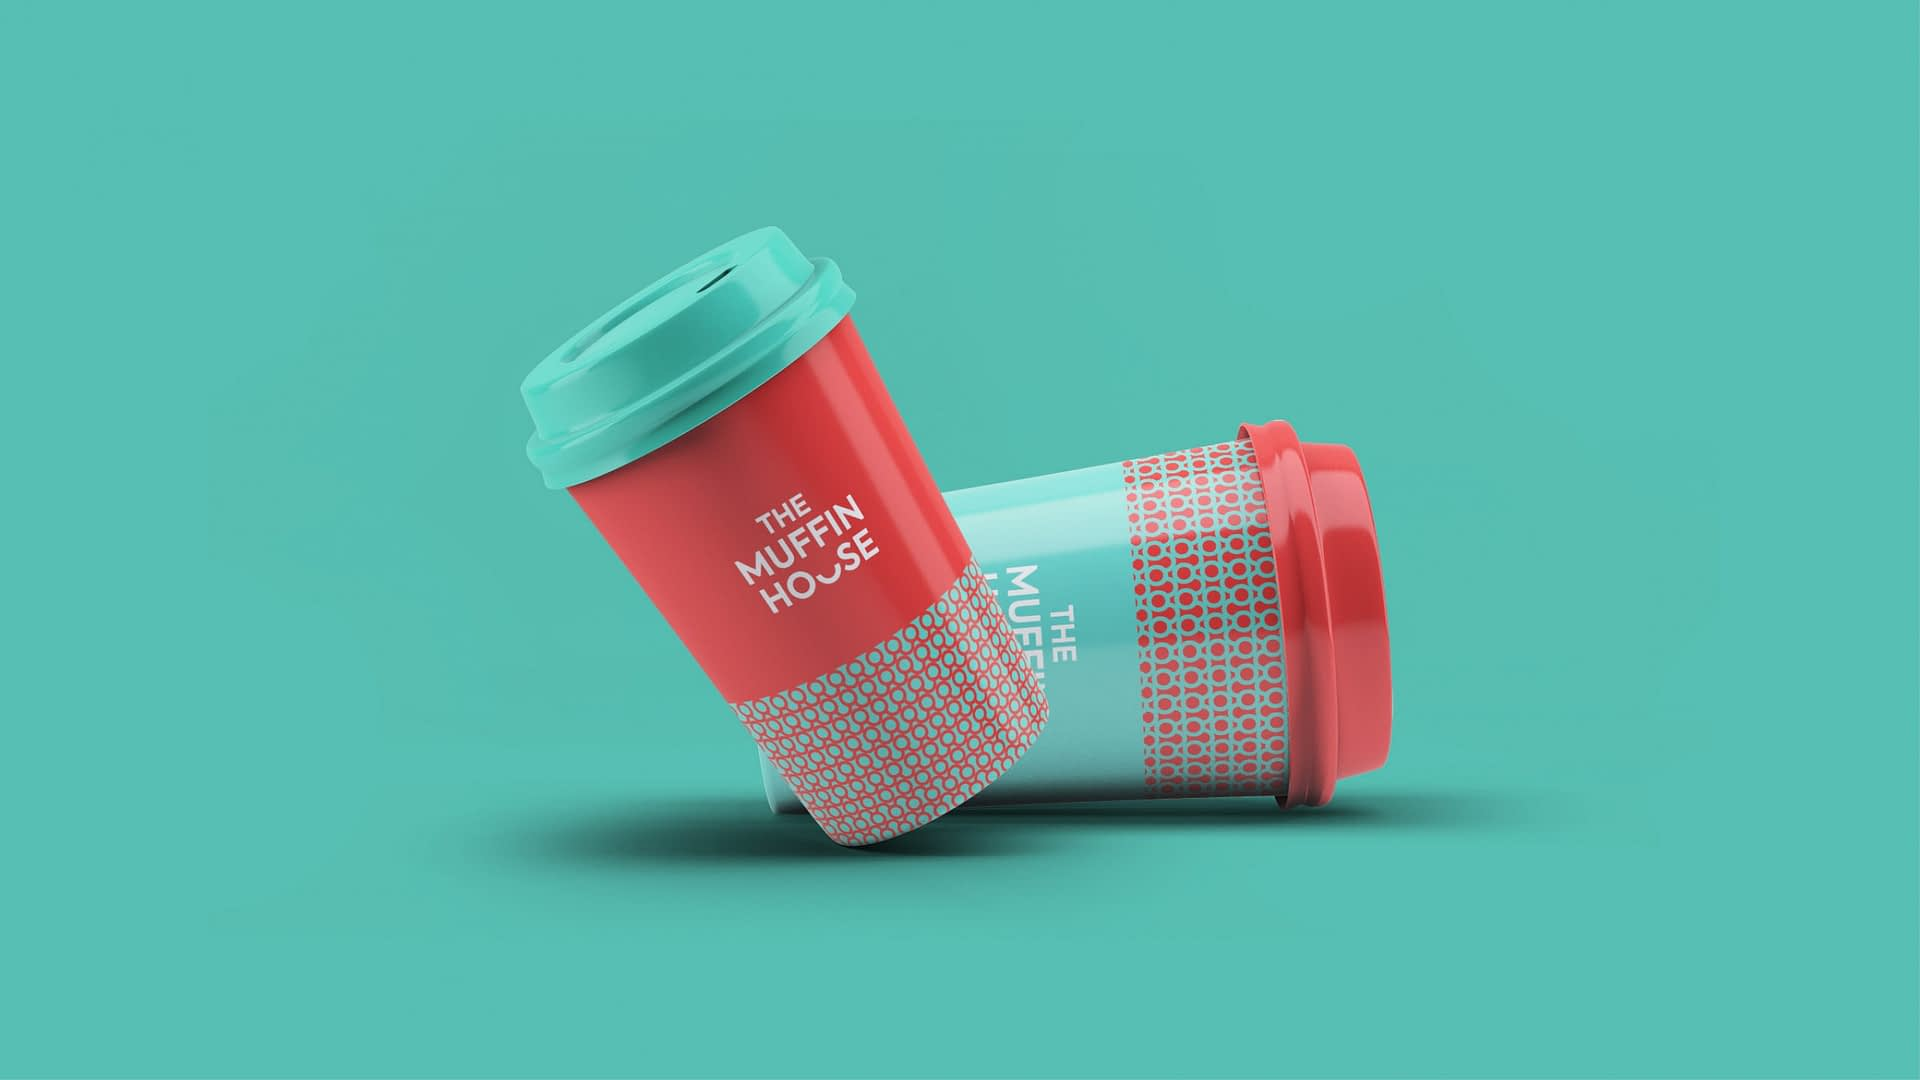 THE MUFFIN HOUSE BEVERAGE PACKAGE DESIGN 2